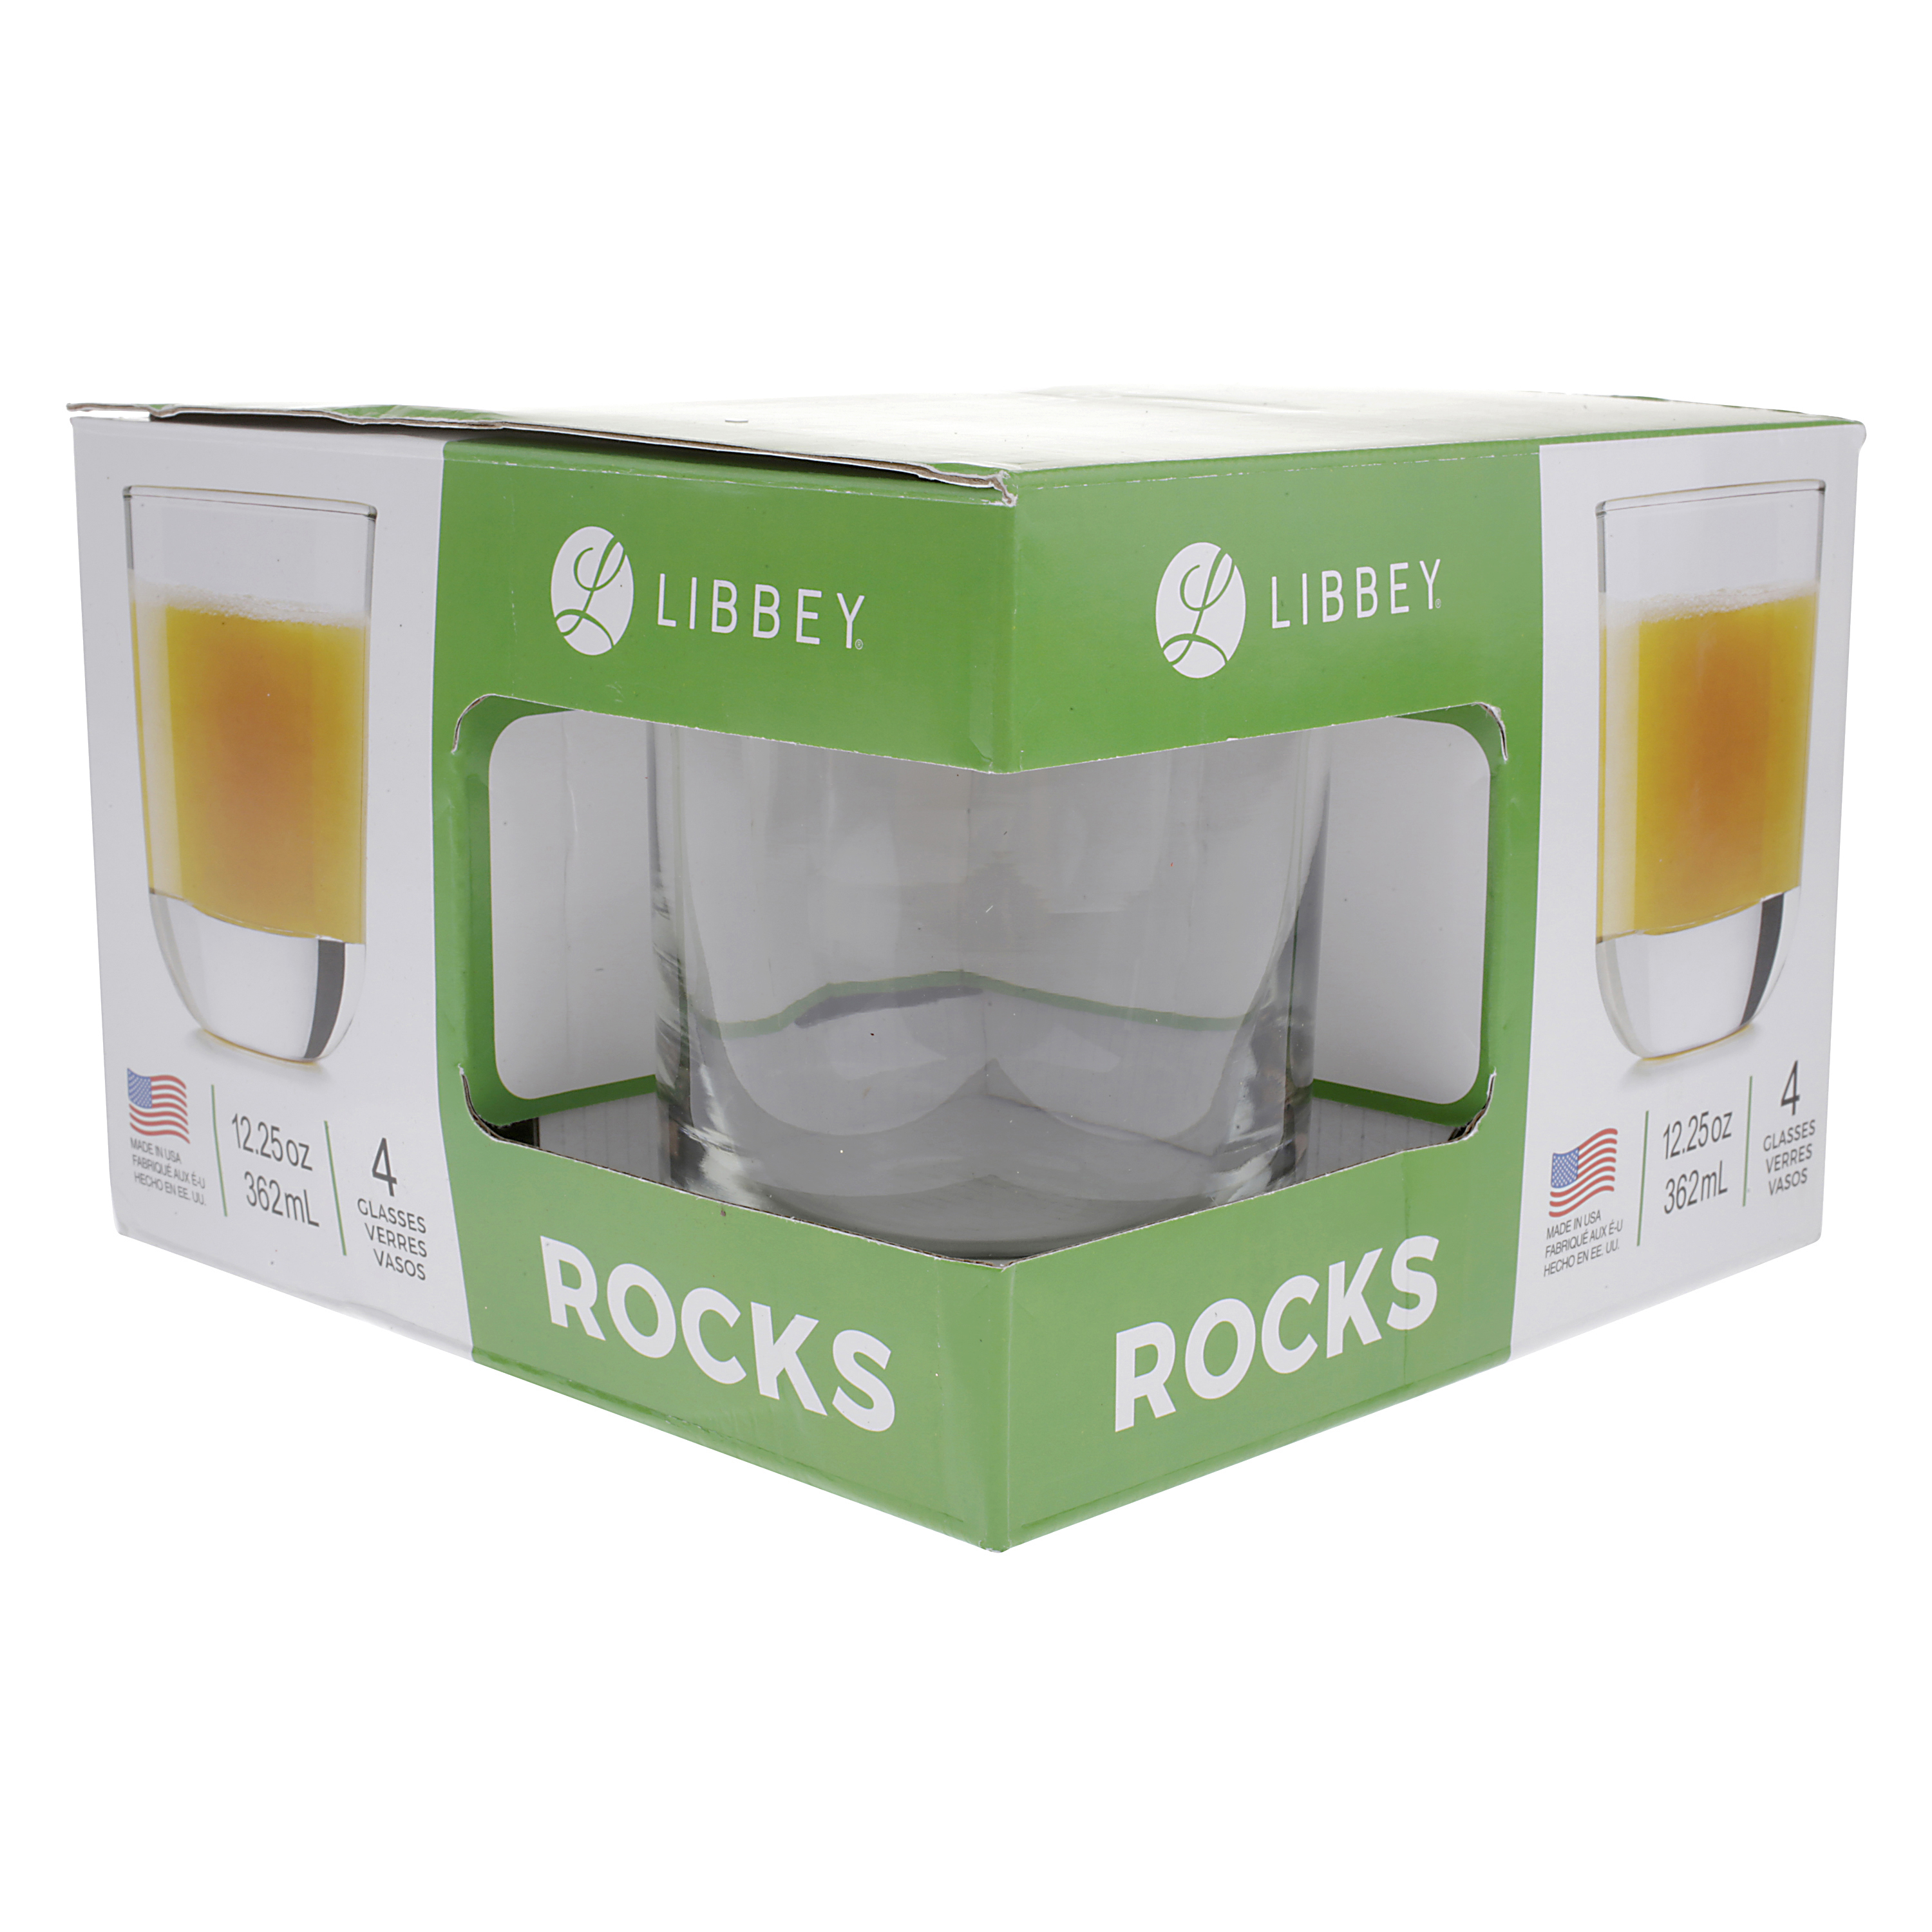 Libbey Rocks Glasses, 4 pack